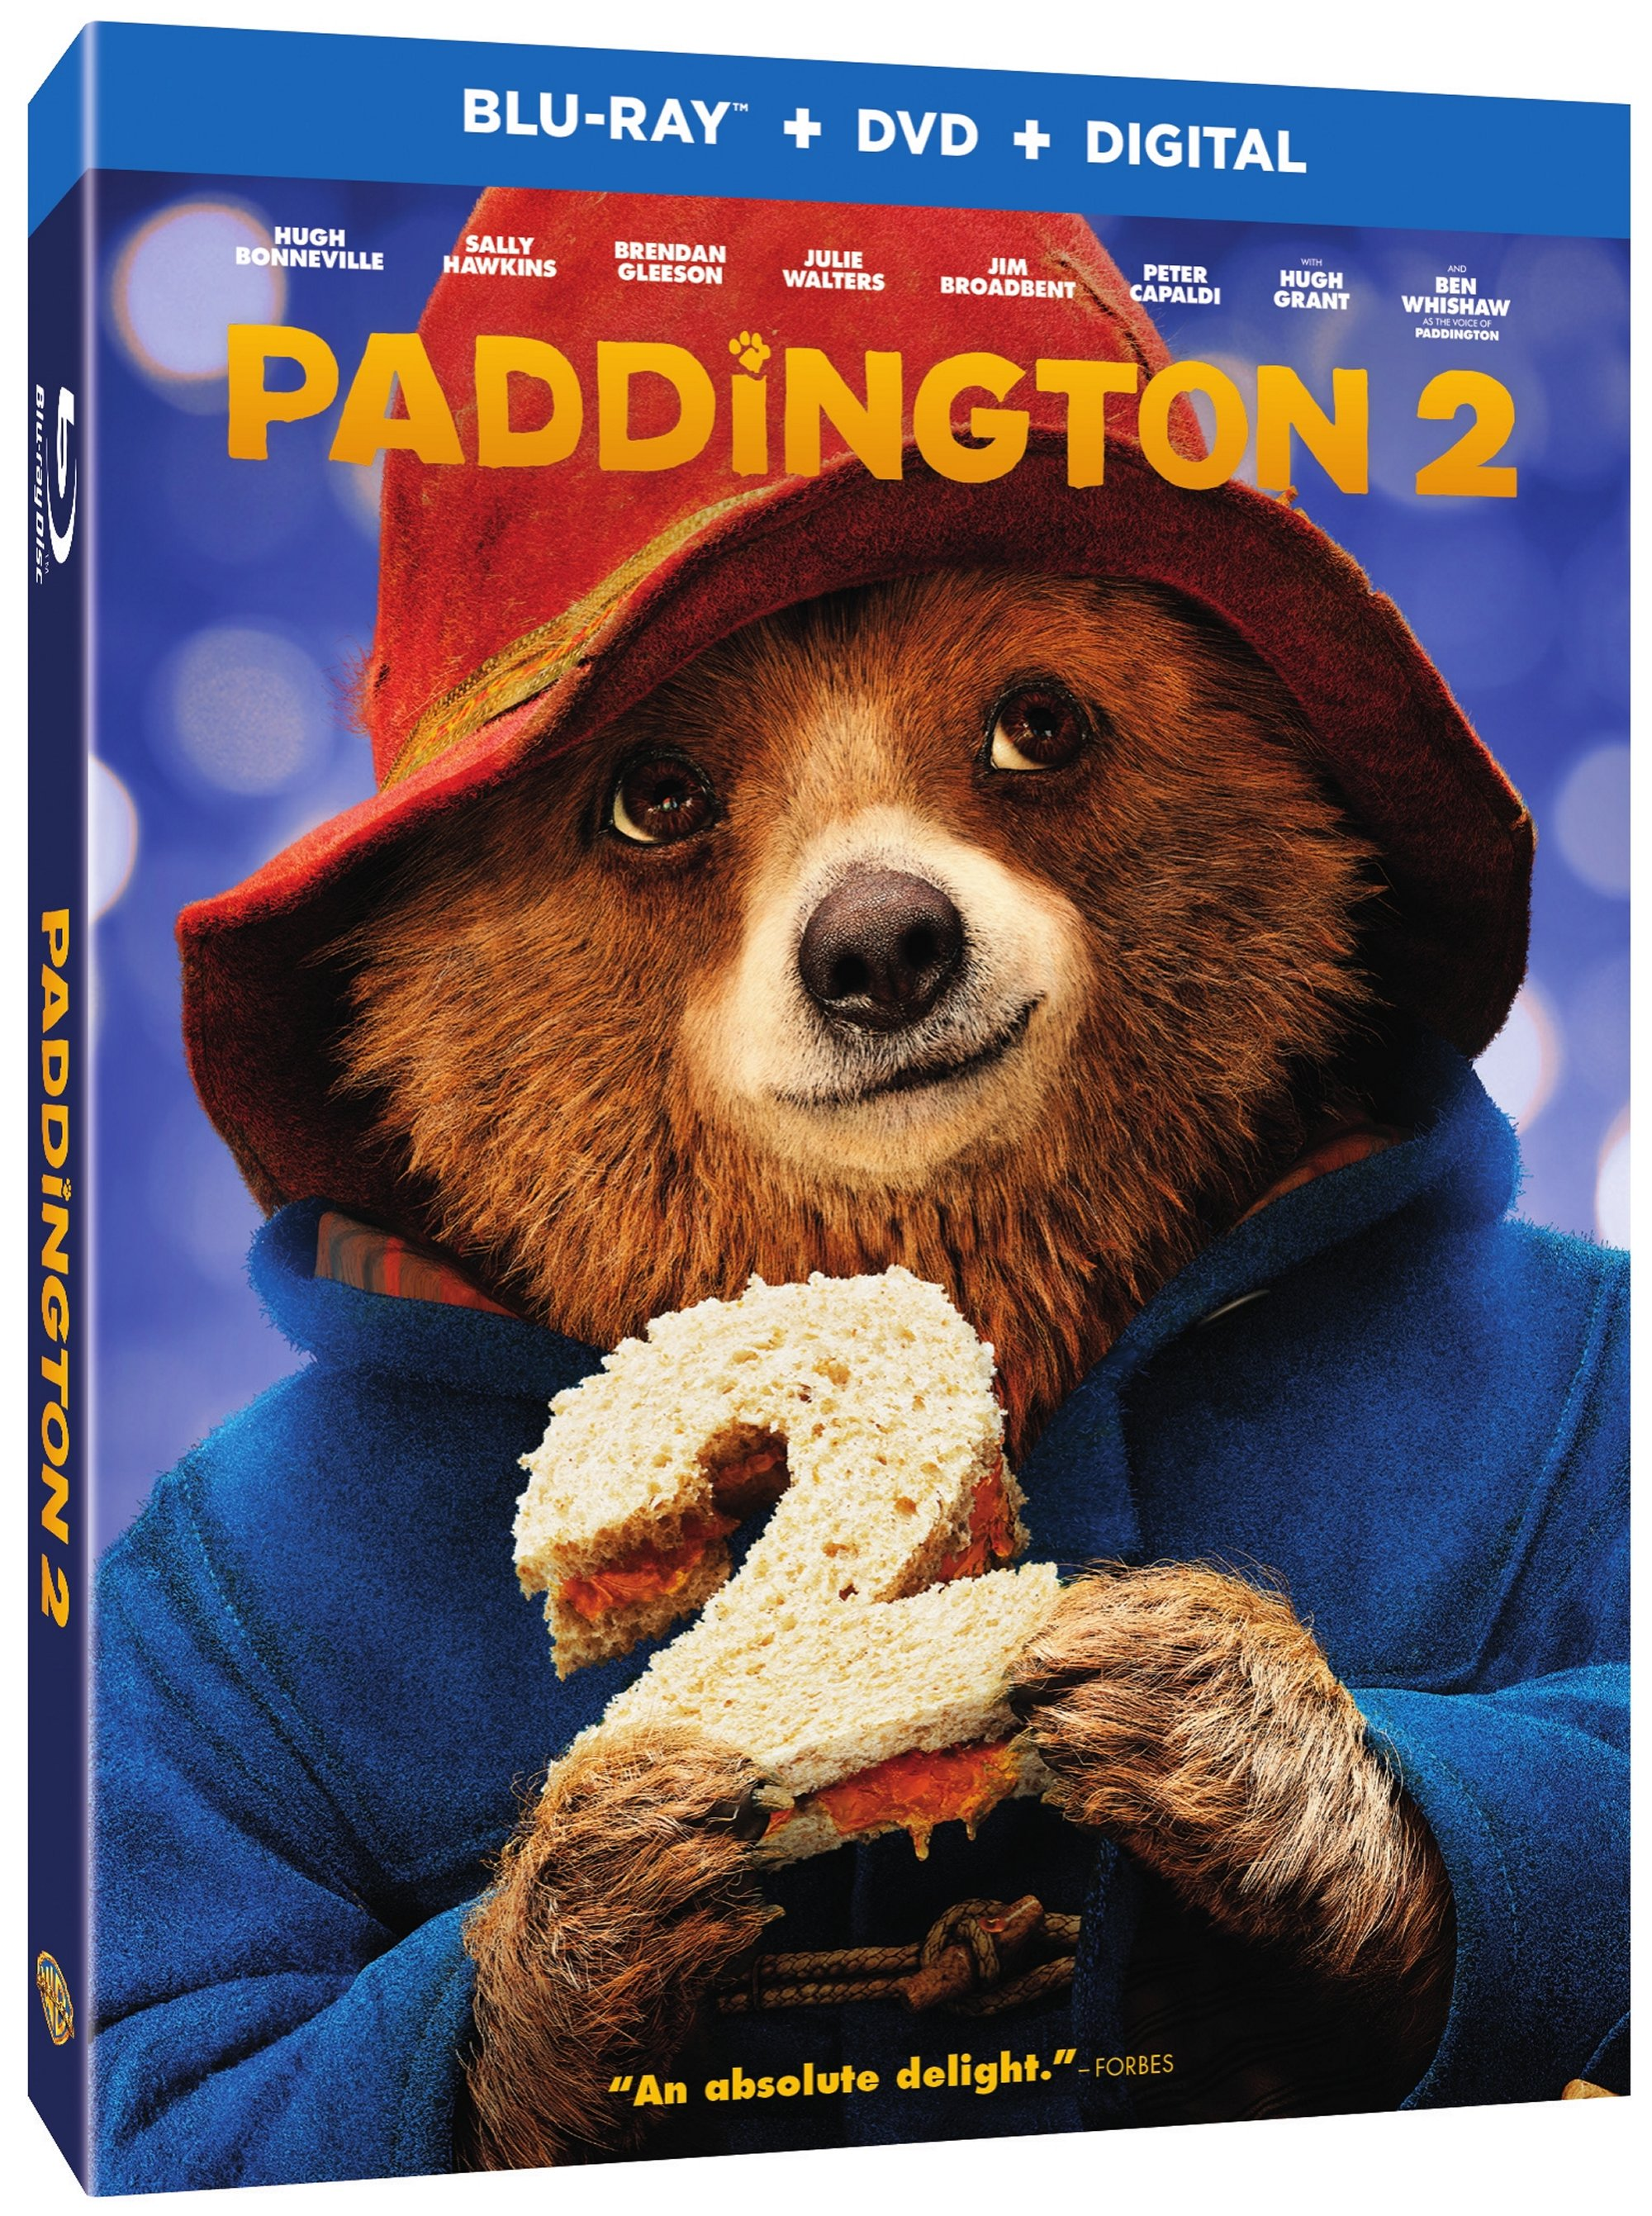 Paddington 2 is now available on DVD